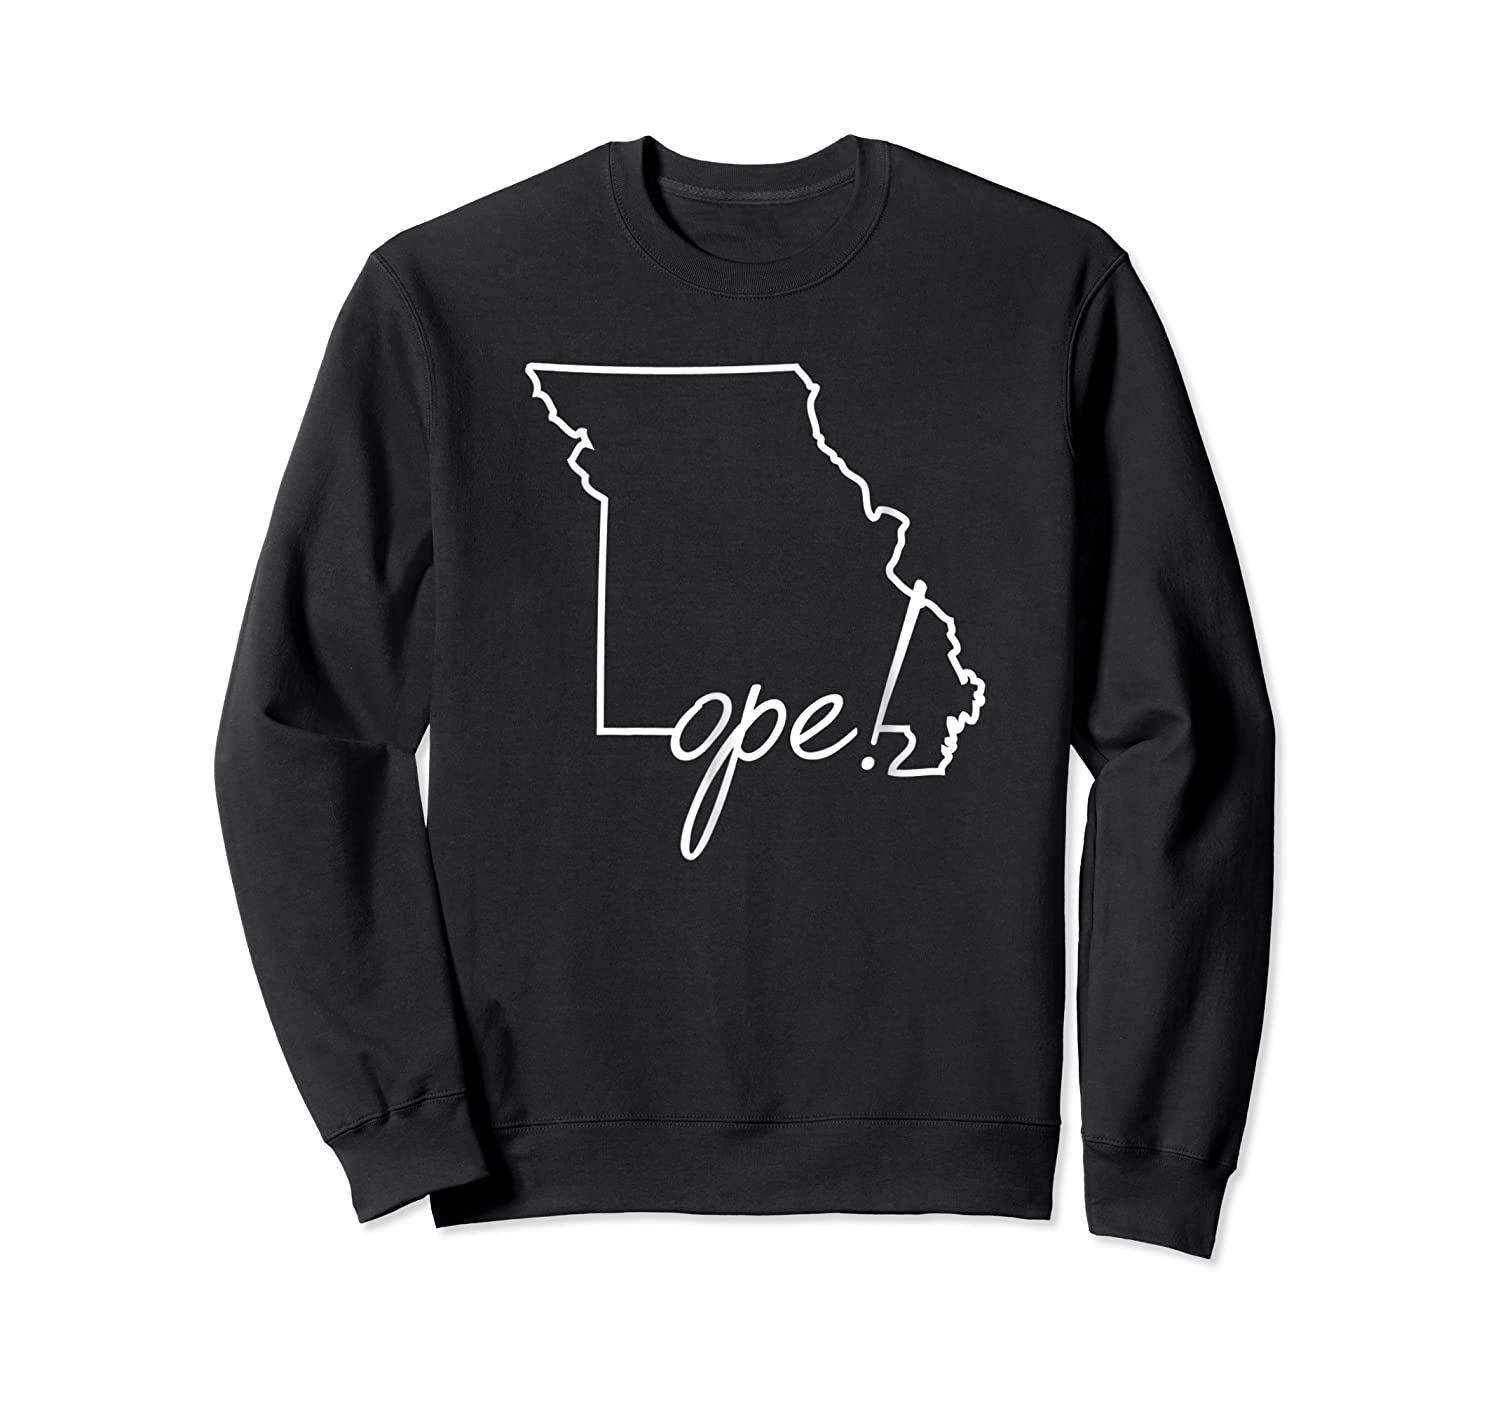 Ope Missouri Shirt Funny Midwest Culture Phrase Saying Gift Crewneck Sweater